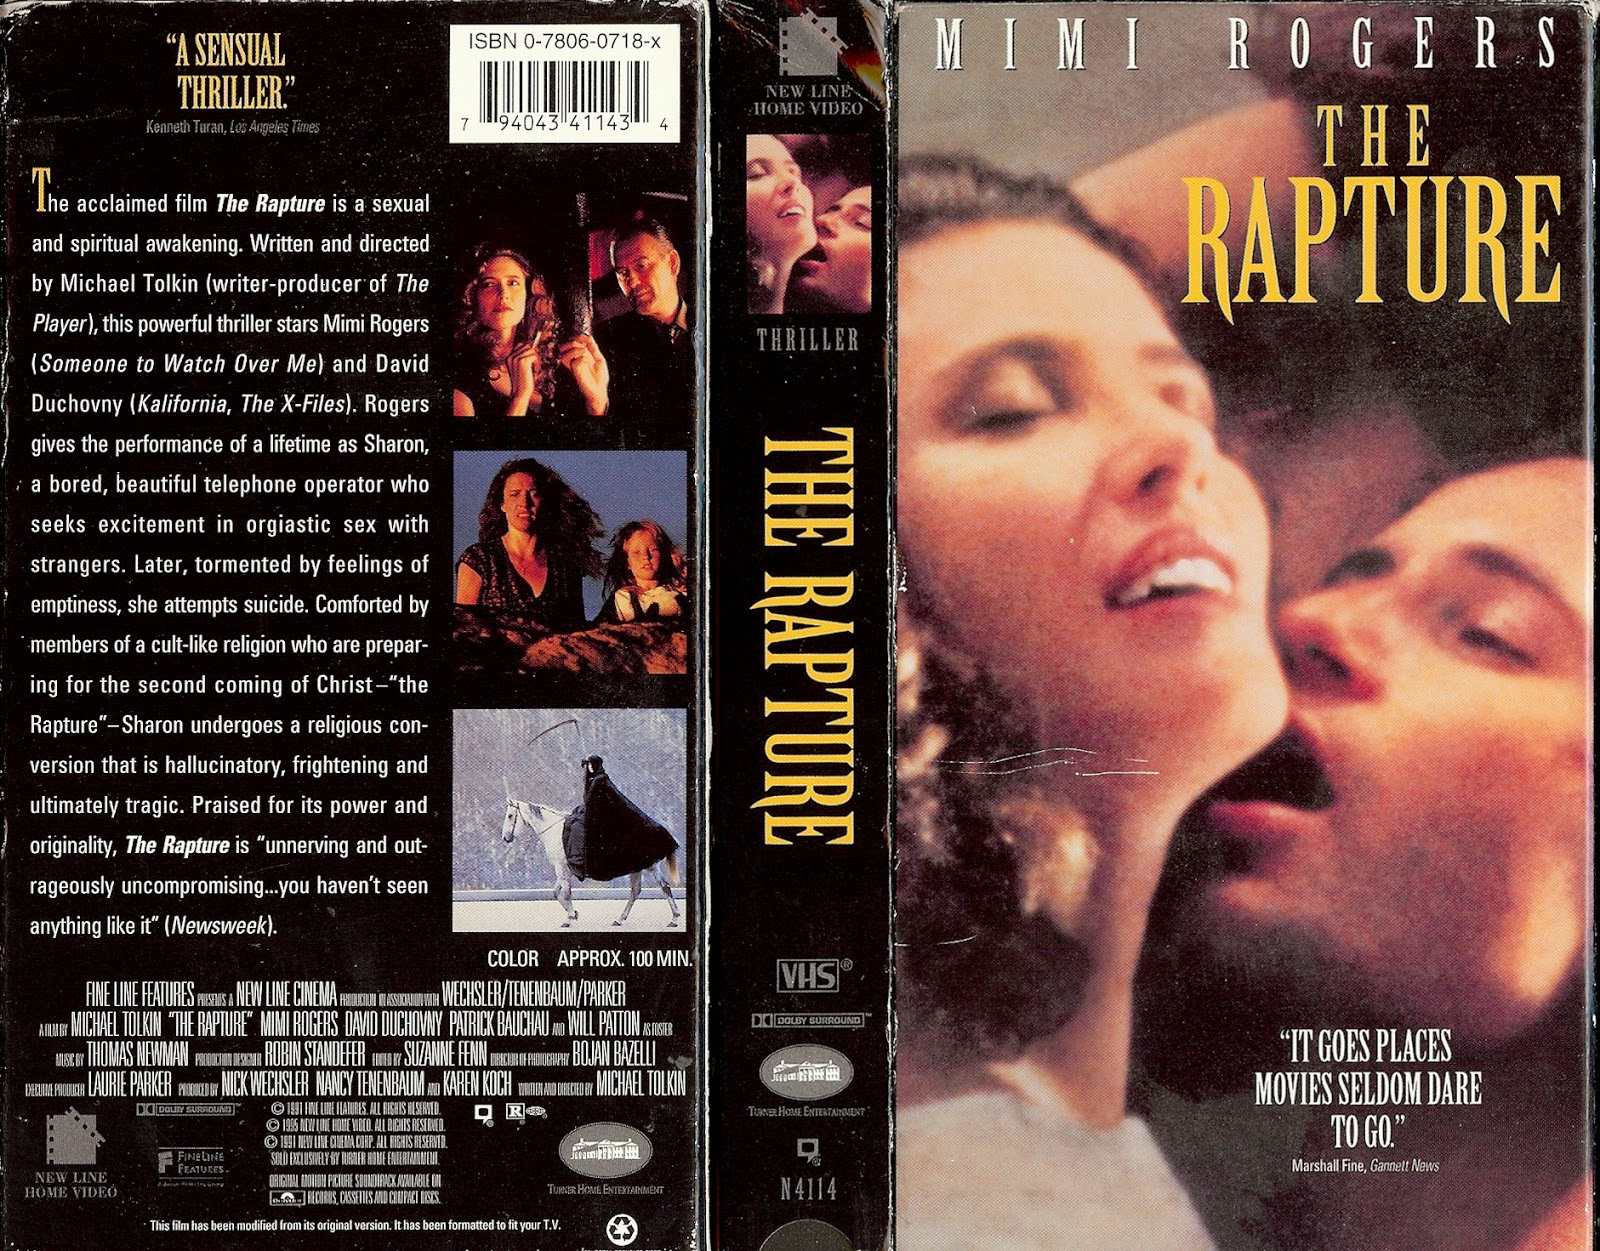 Watch Mimi Rogers The Rapture video